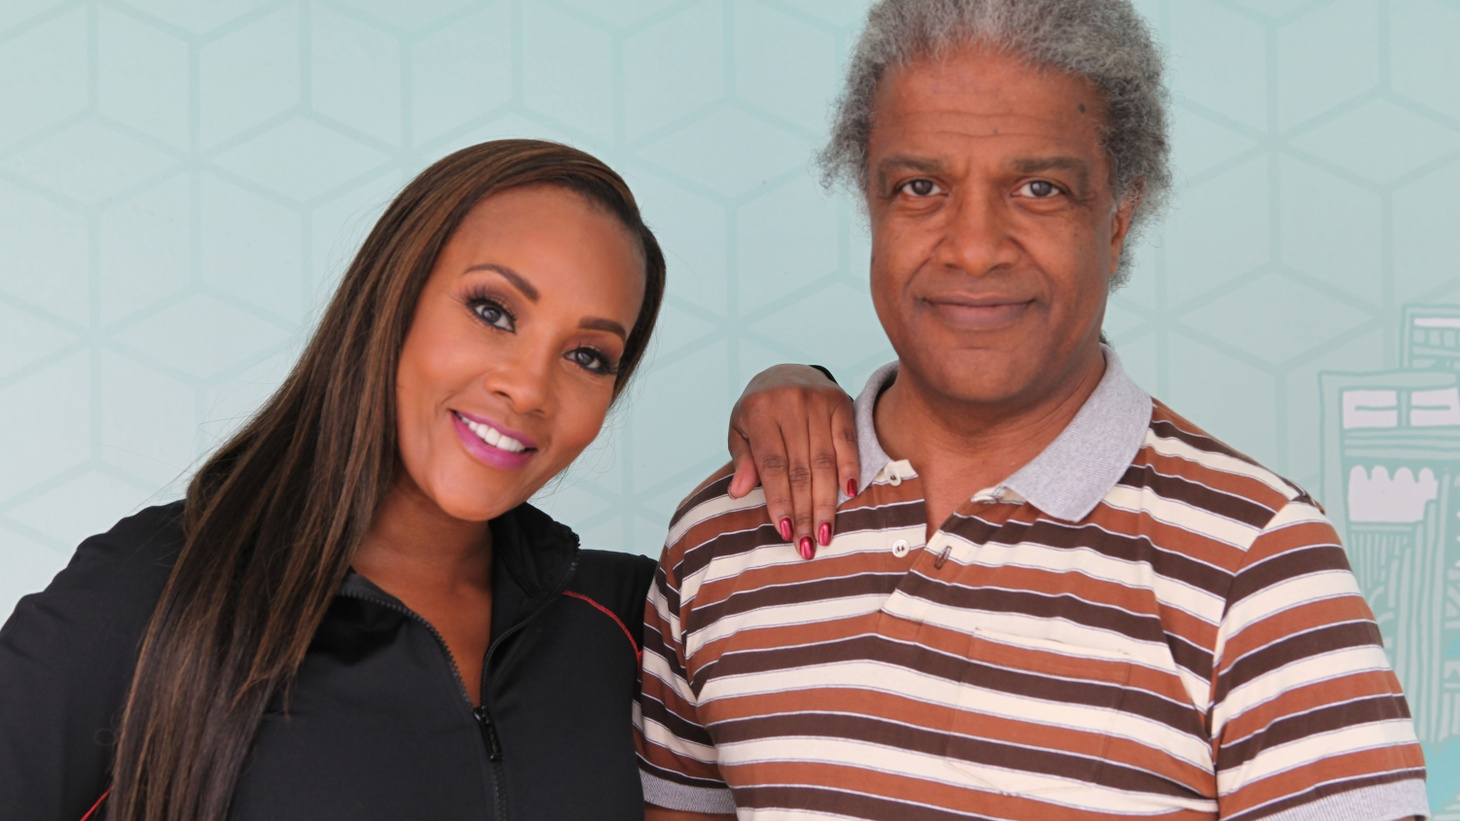 Always keeping family as a source of inspiration, Vivica A. Fox shares her intentions in choosing film roles and what she learned while filming her newest release, 6 Ways to Die.